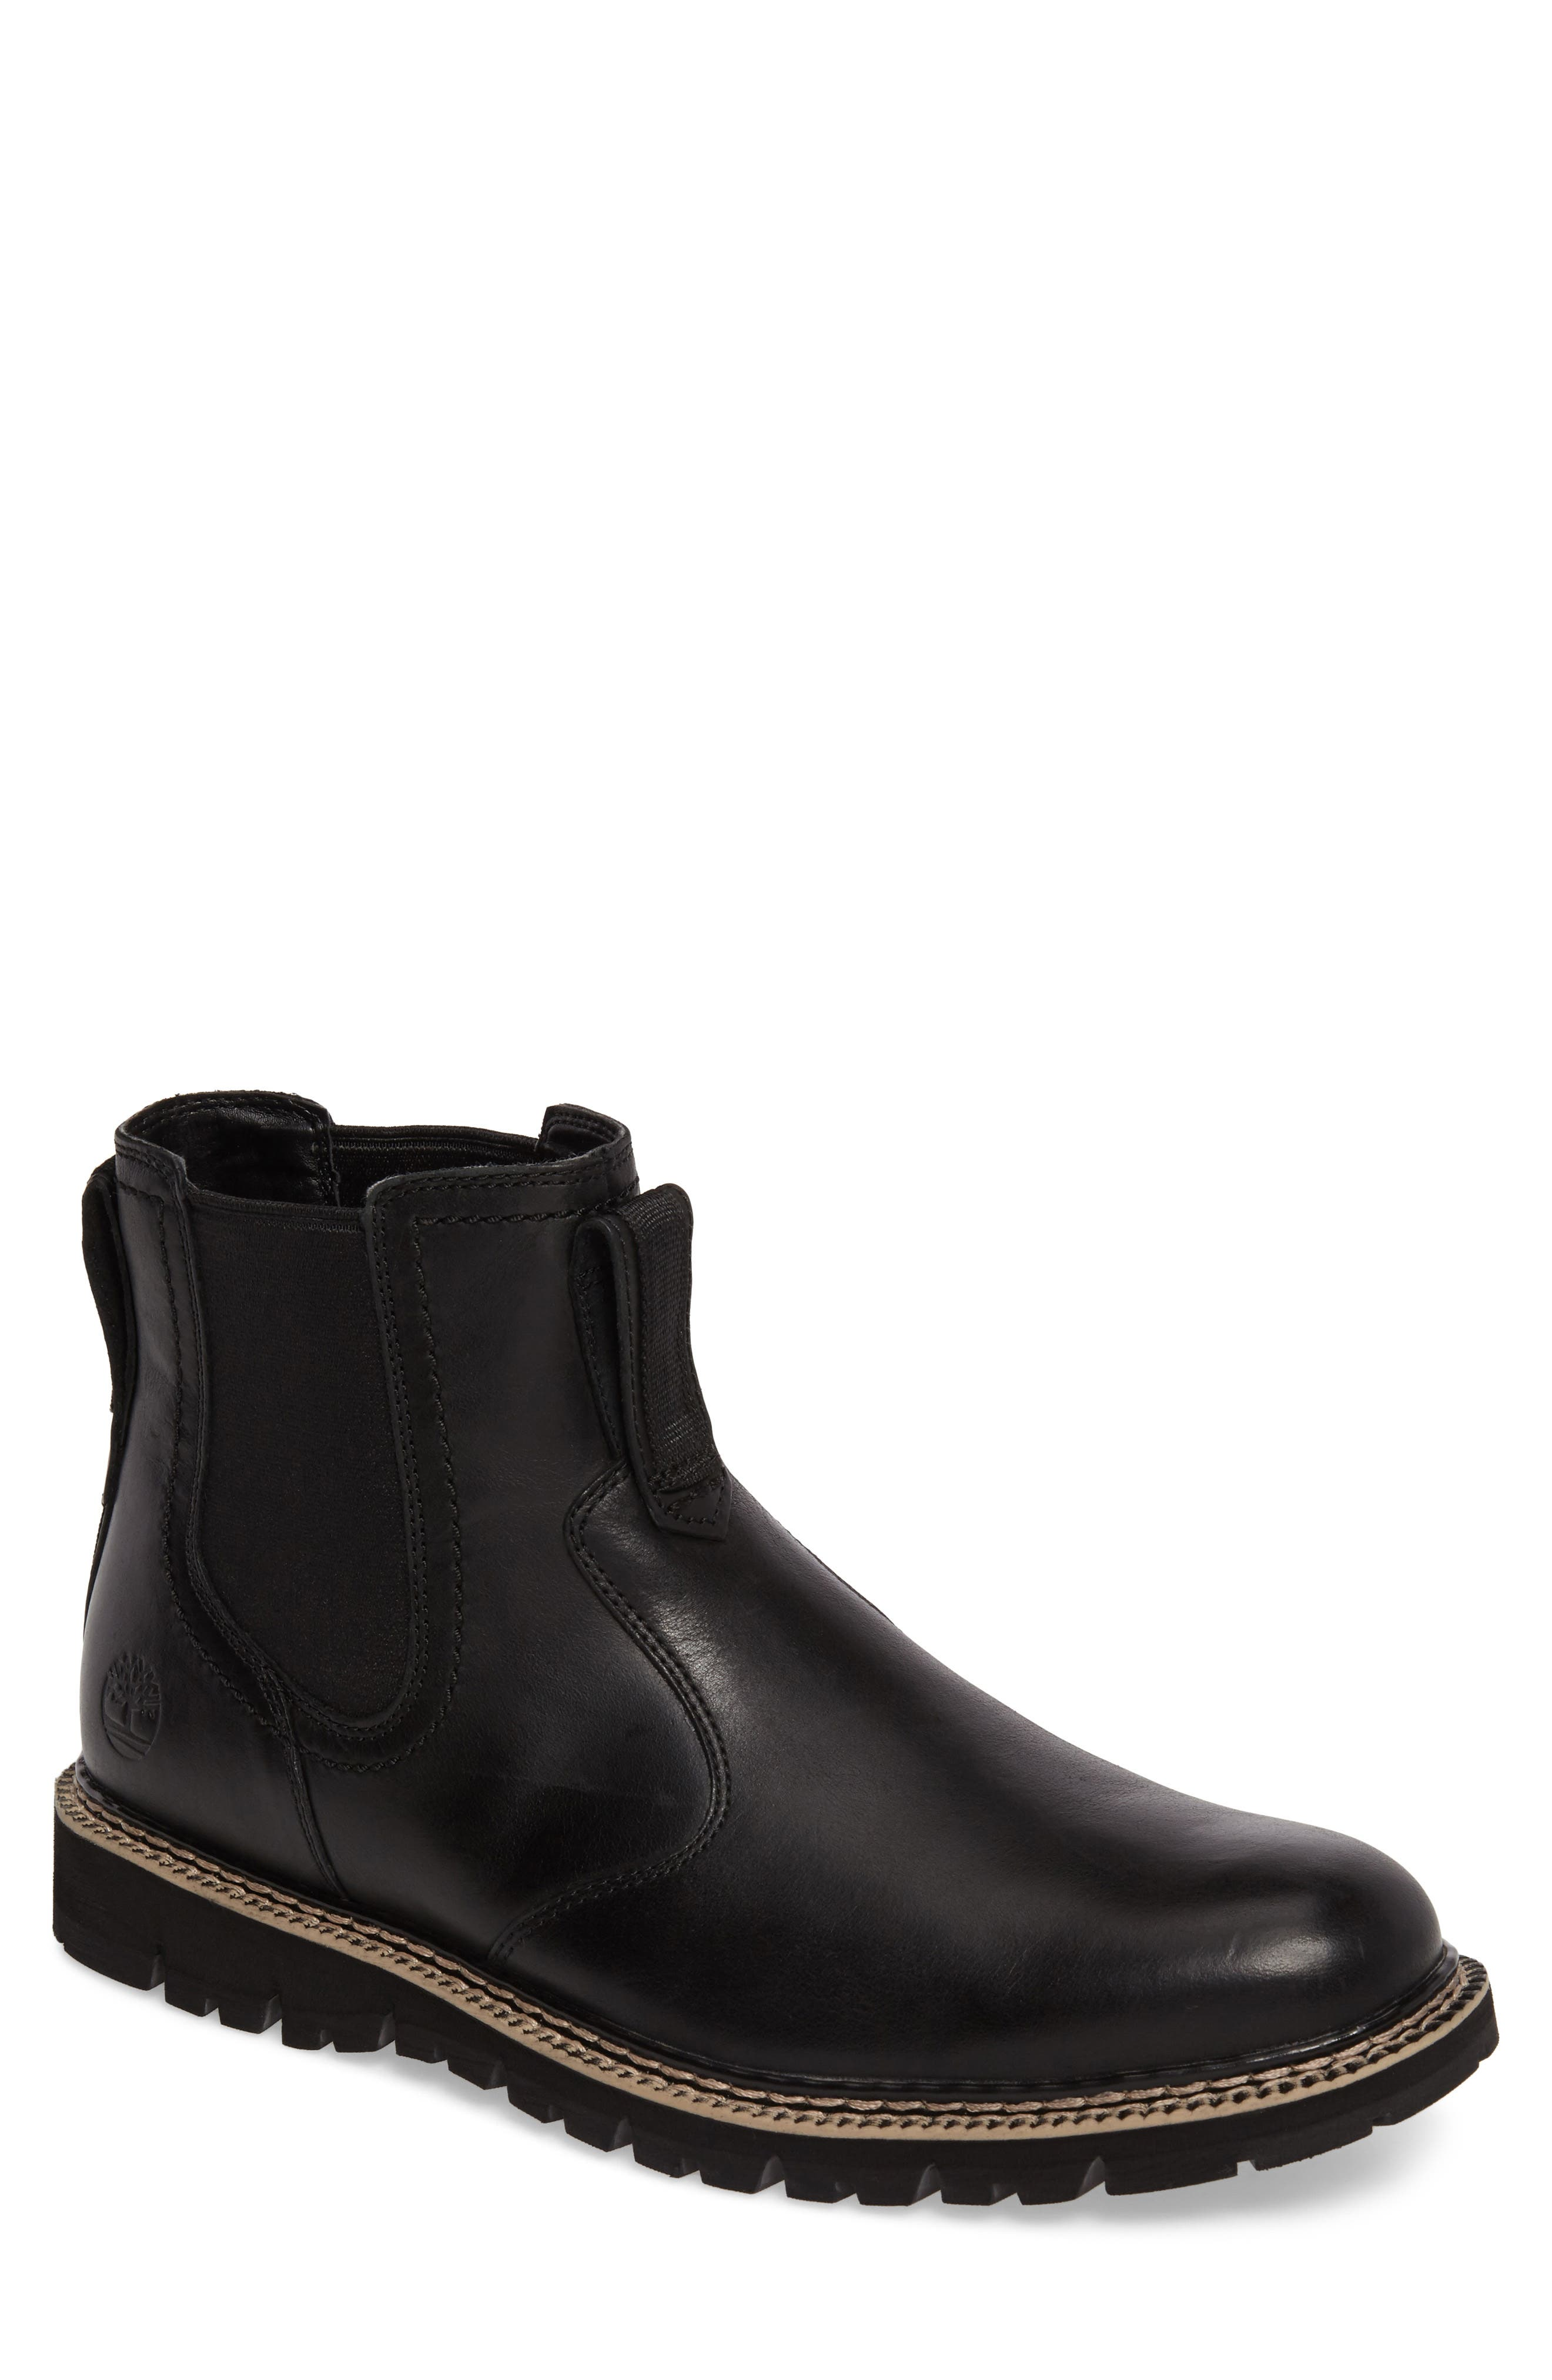 Main Image - Timberland Britton Hill Chelsea Boot (Men)